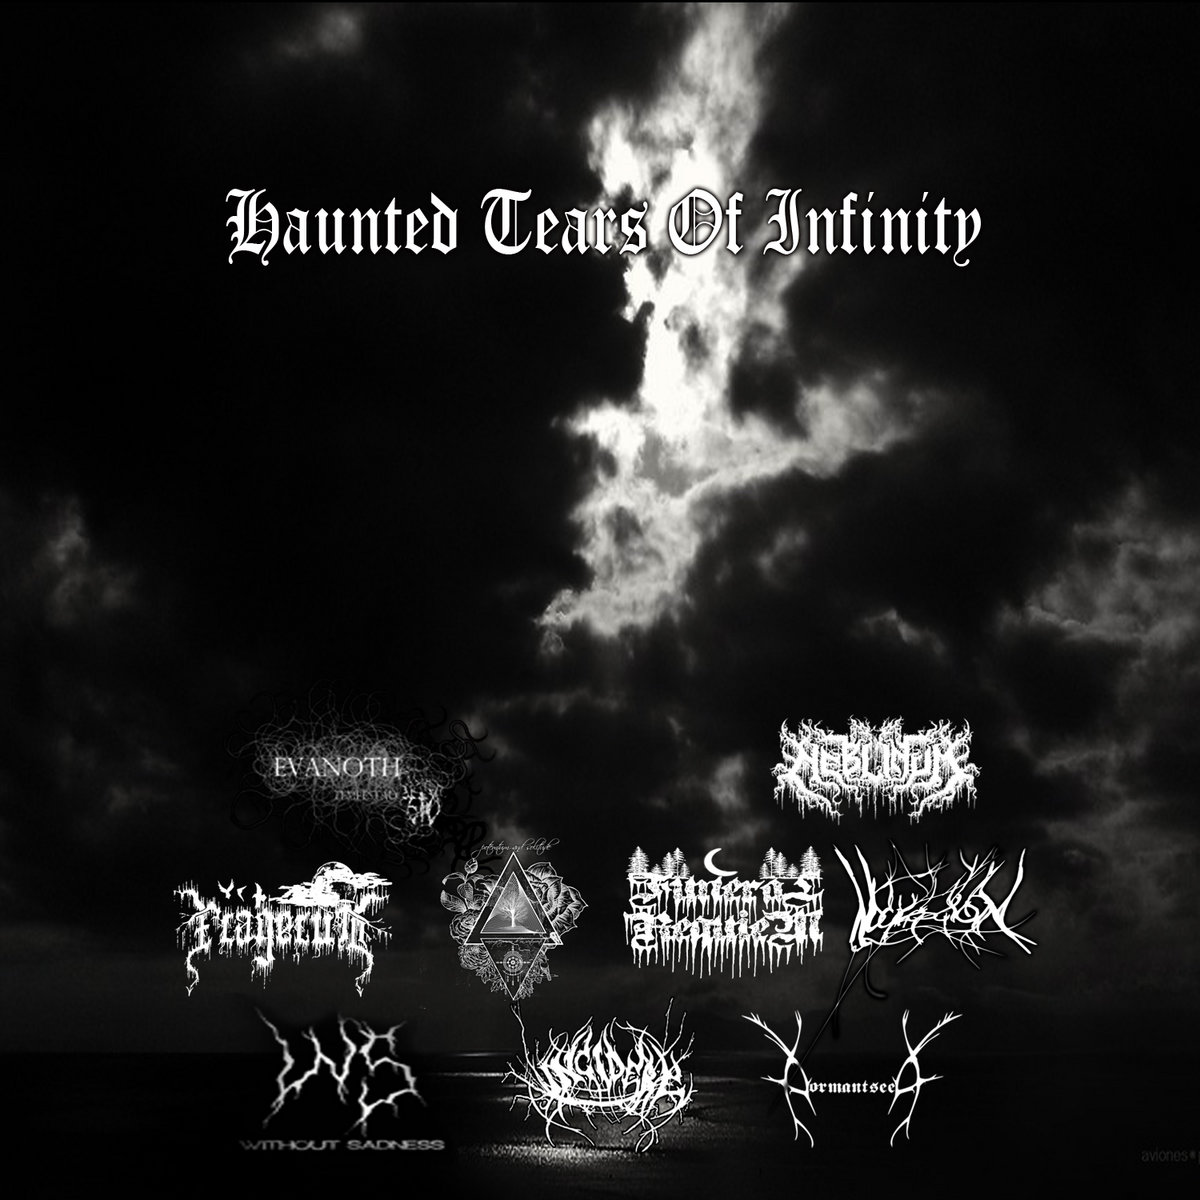 Dormant Seed & Evanoth & Falgelum & Funeral Requiem & Incidere & Neblinum & Noicepcion & Potemtum And Solitude & Without Sadness - Haunted Tears Of Infinity (Split)